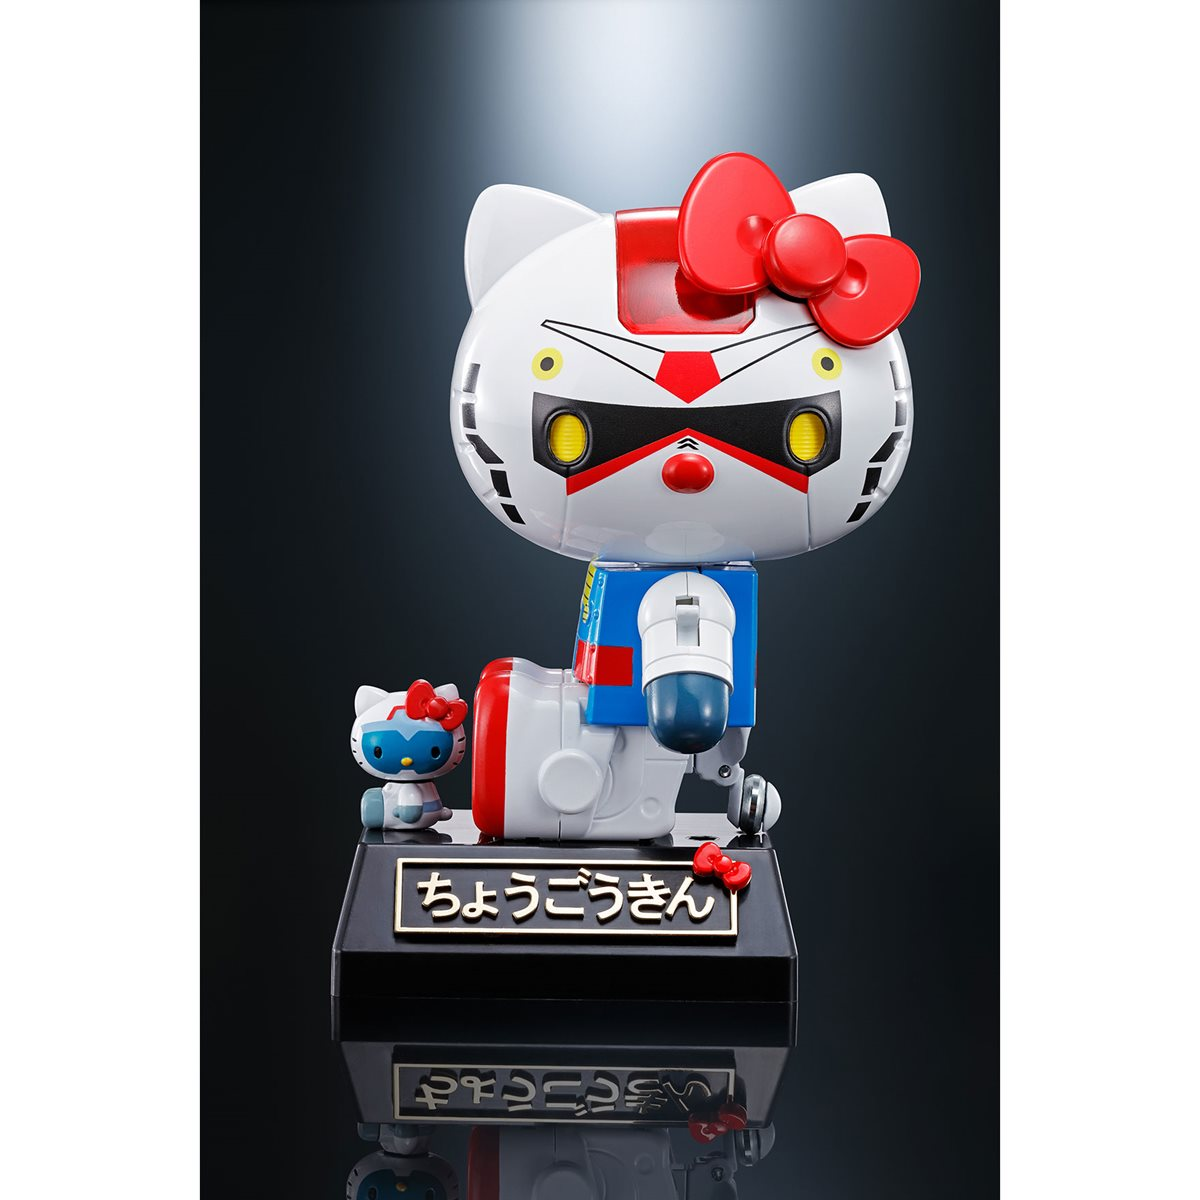 completed Chogokin Hello Kitty sitting down